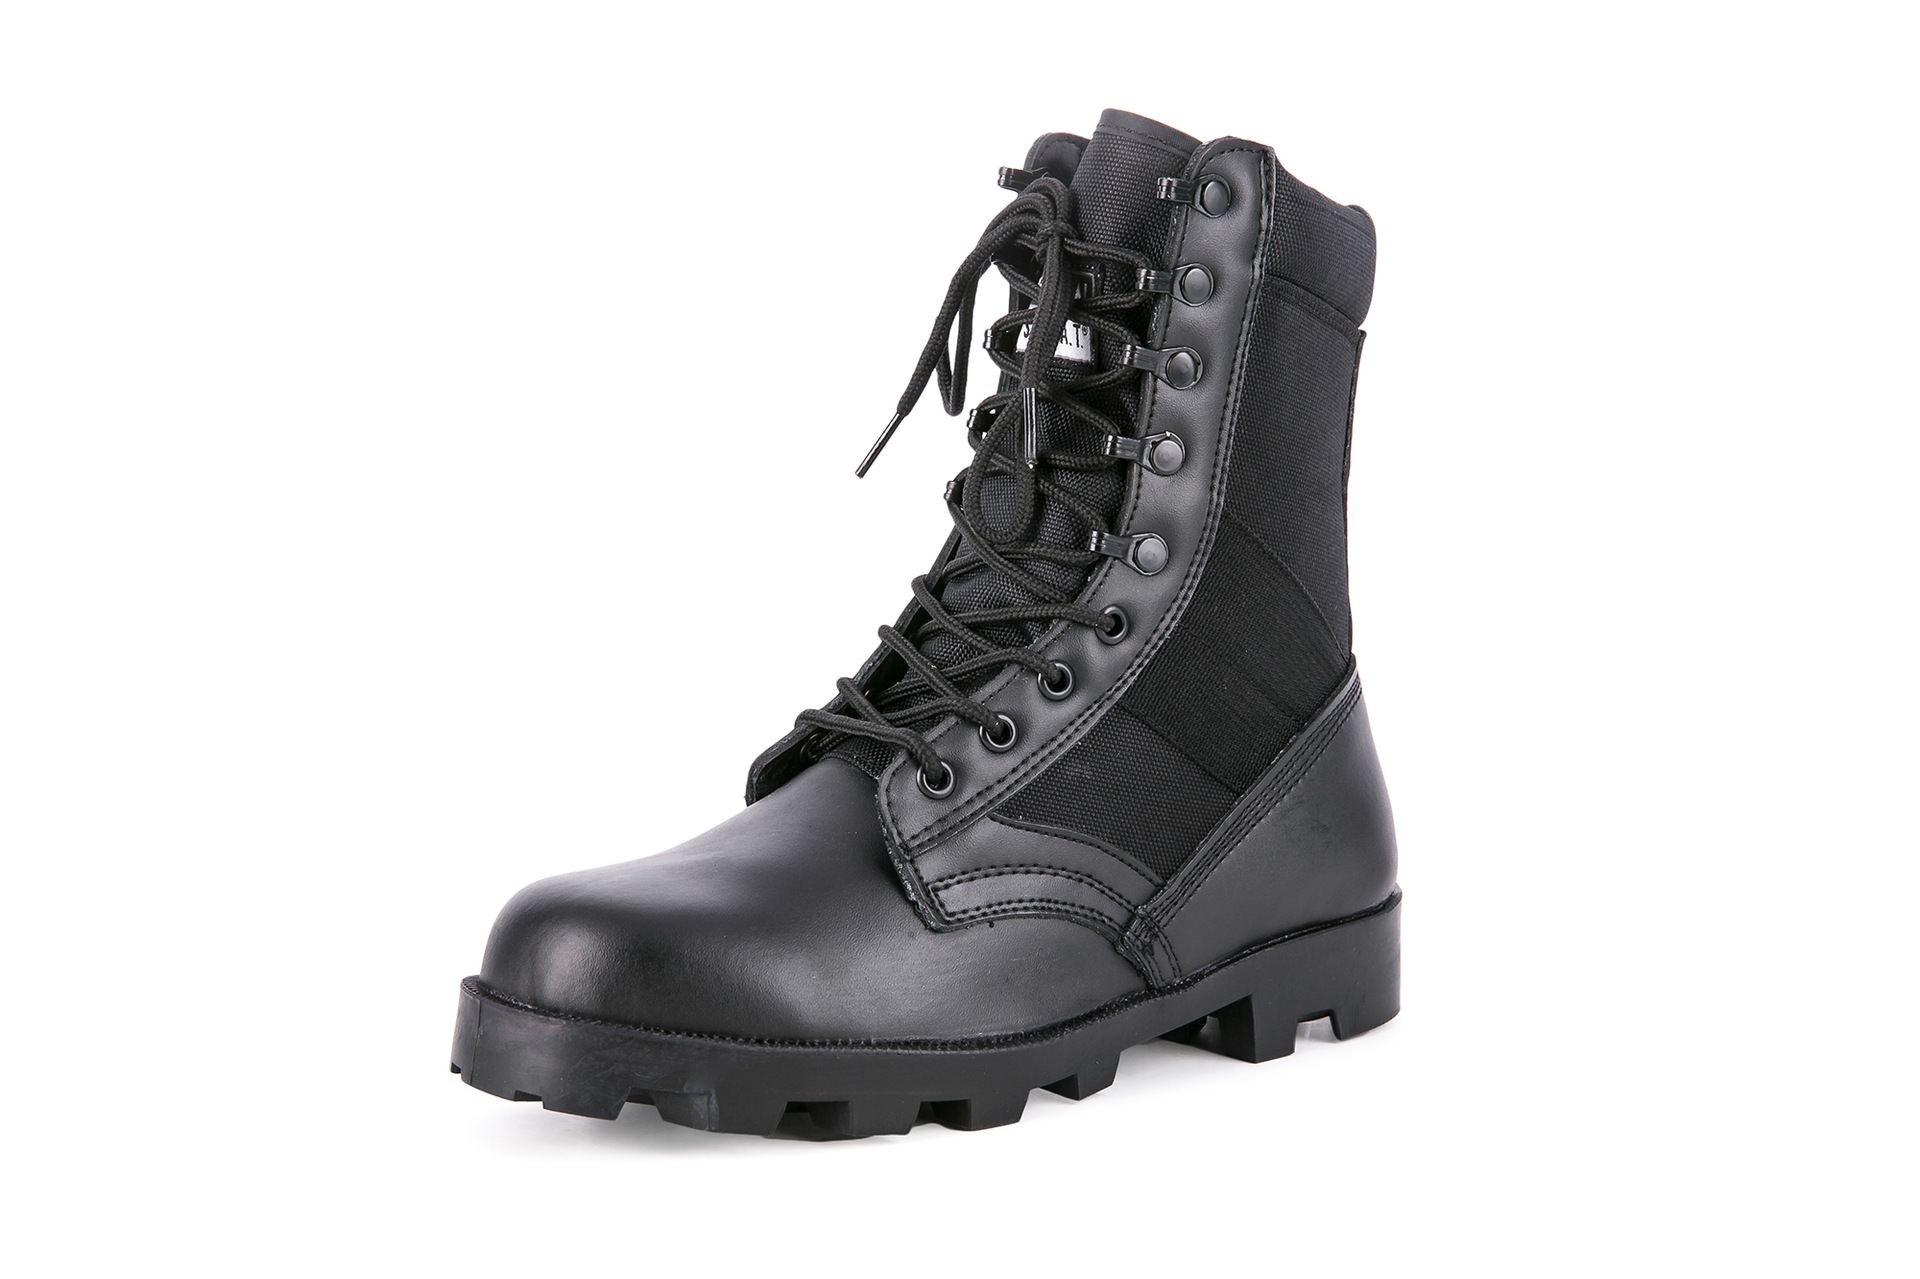 Ultra-Light Tactical Boots For Combat Boots SFB Combat Boots Canvas Breathable CS Hight-top For Combat Boots A Wave Black And Wh